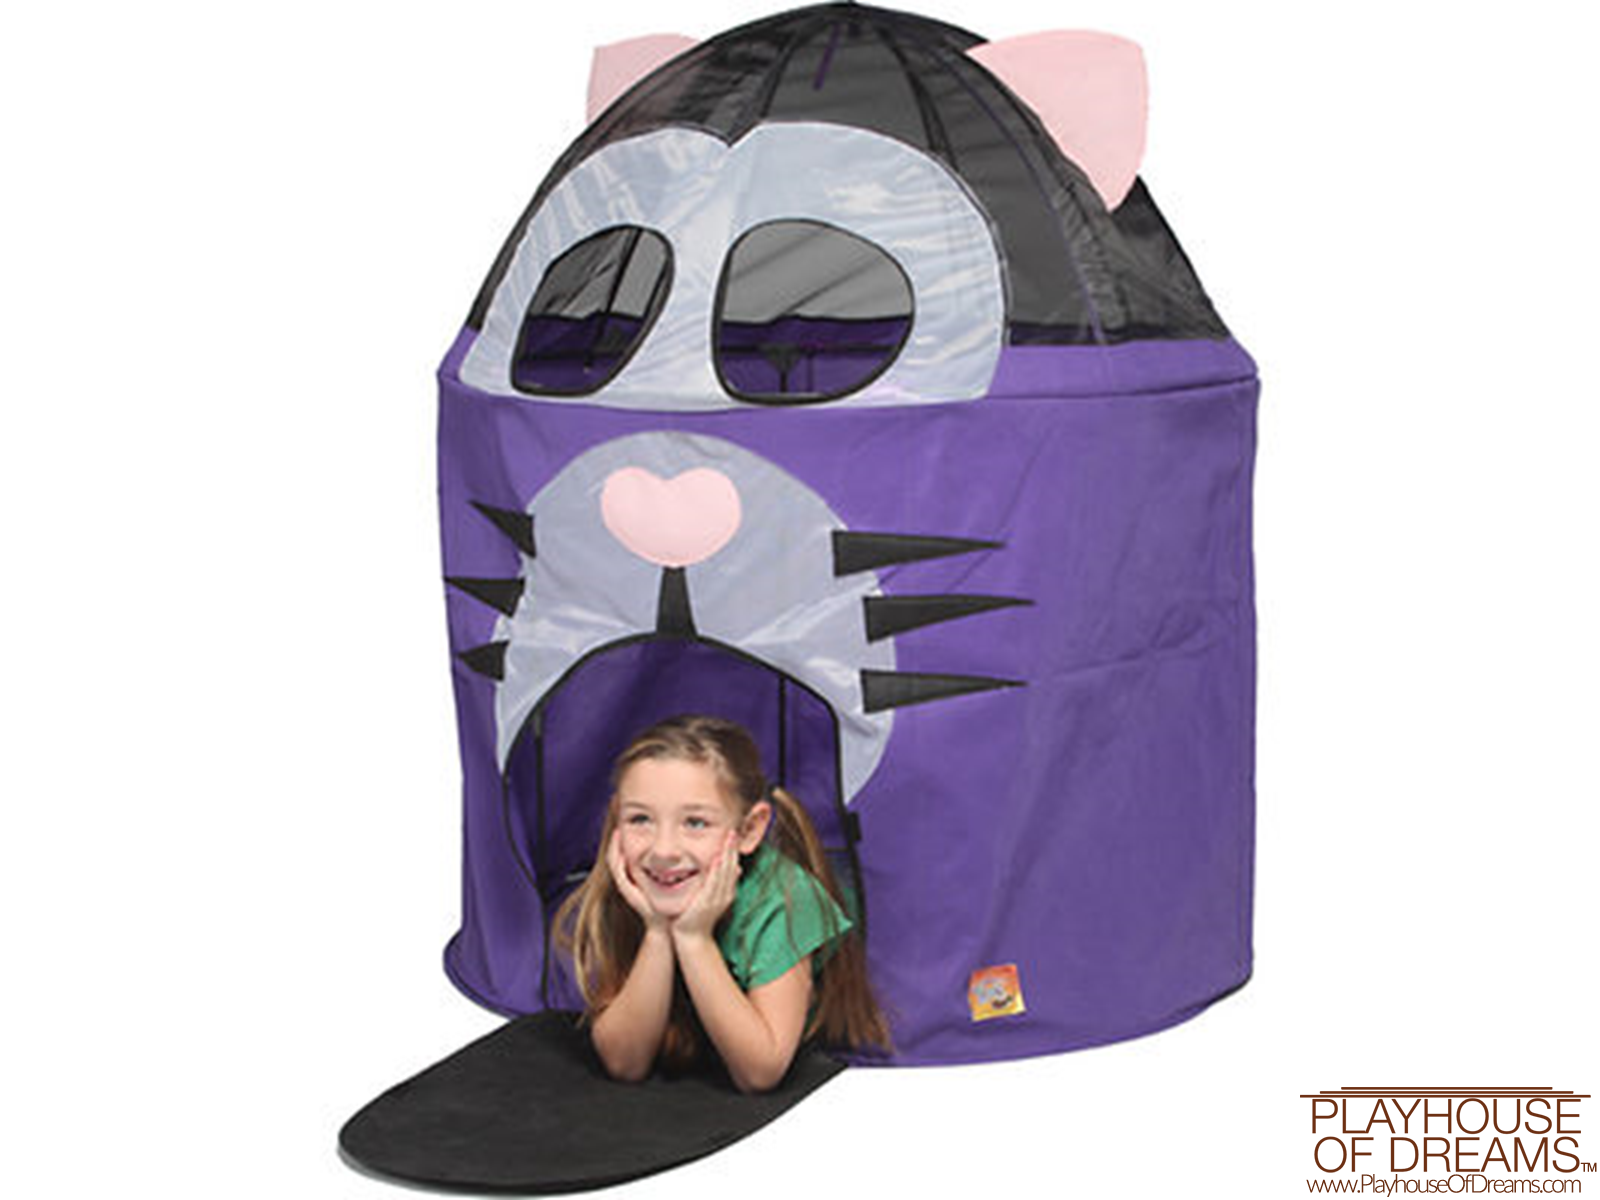 Bazoongi Fat Cat Hut Play Tent - Playhouse of Dreams  - 2